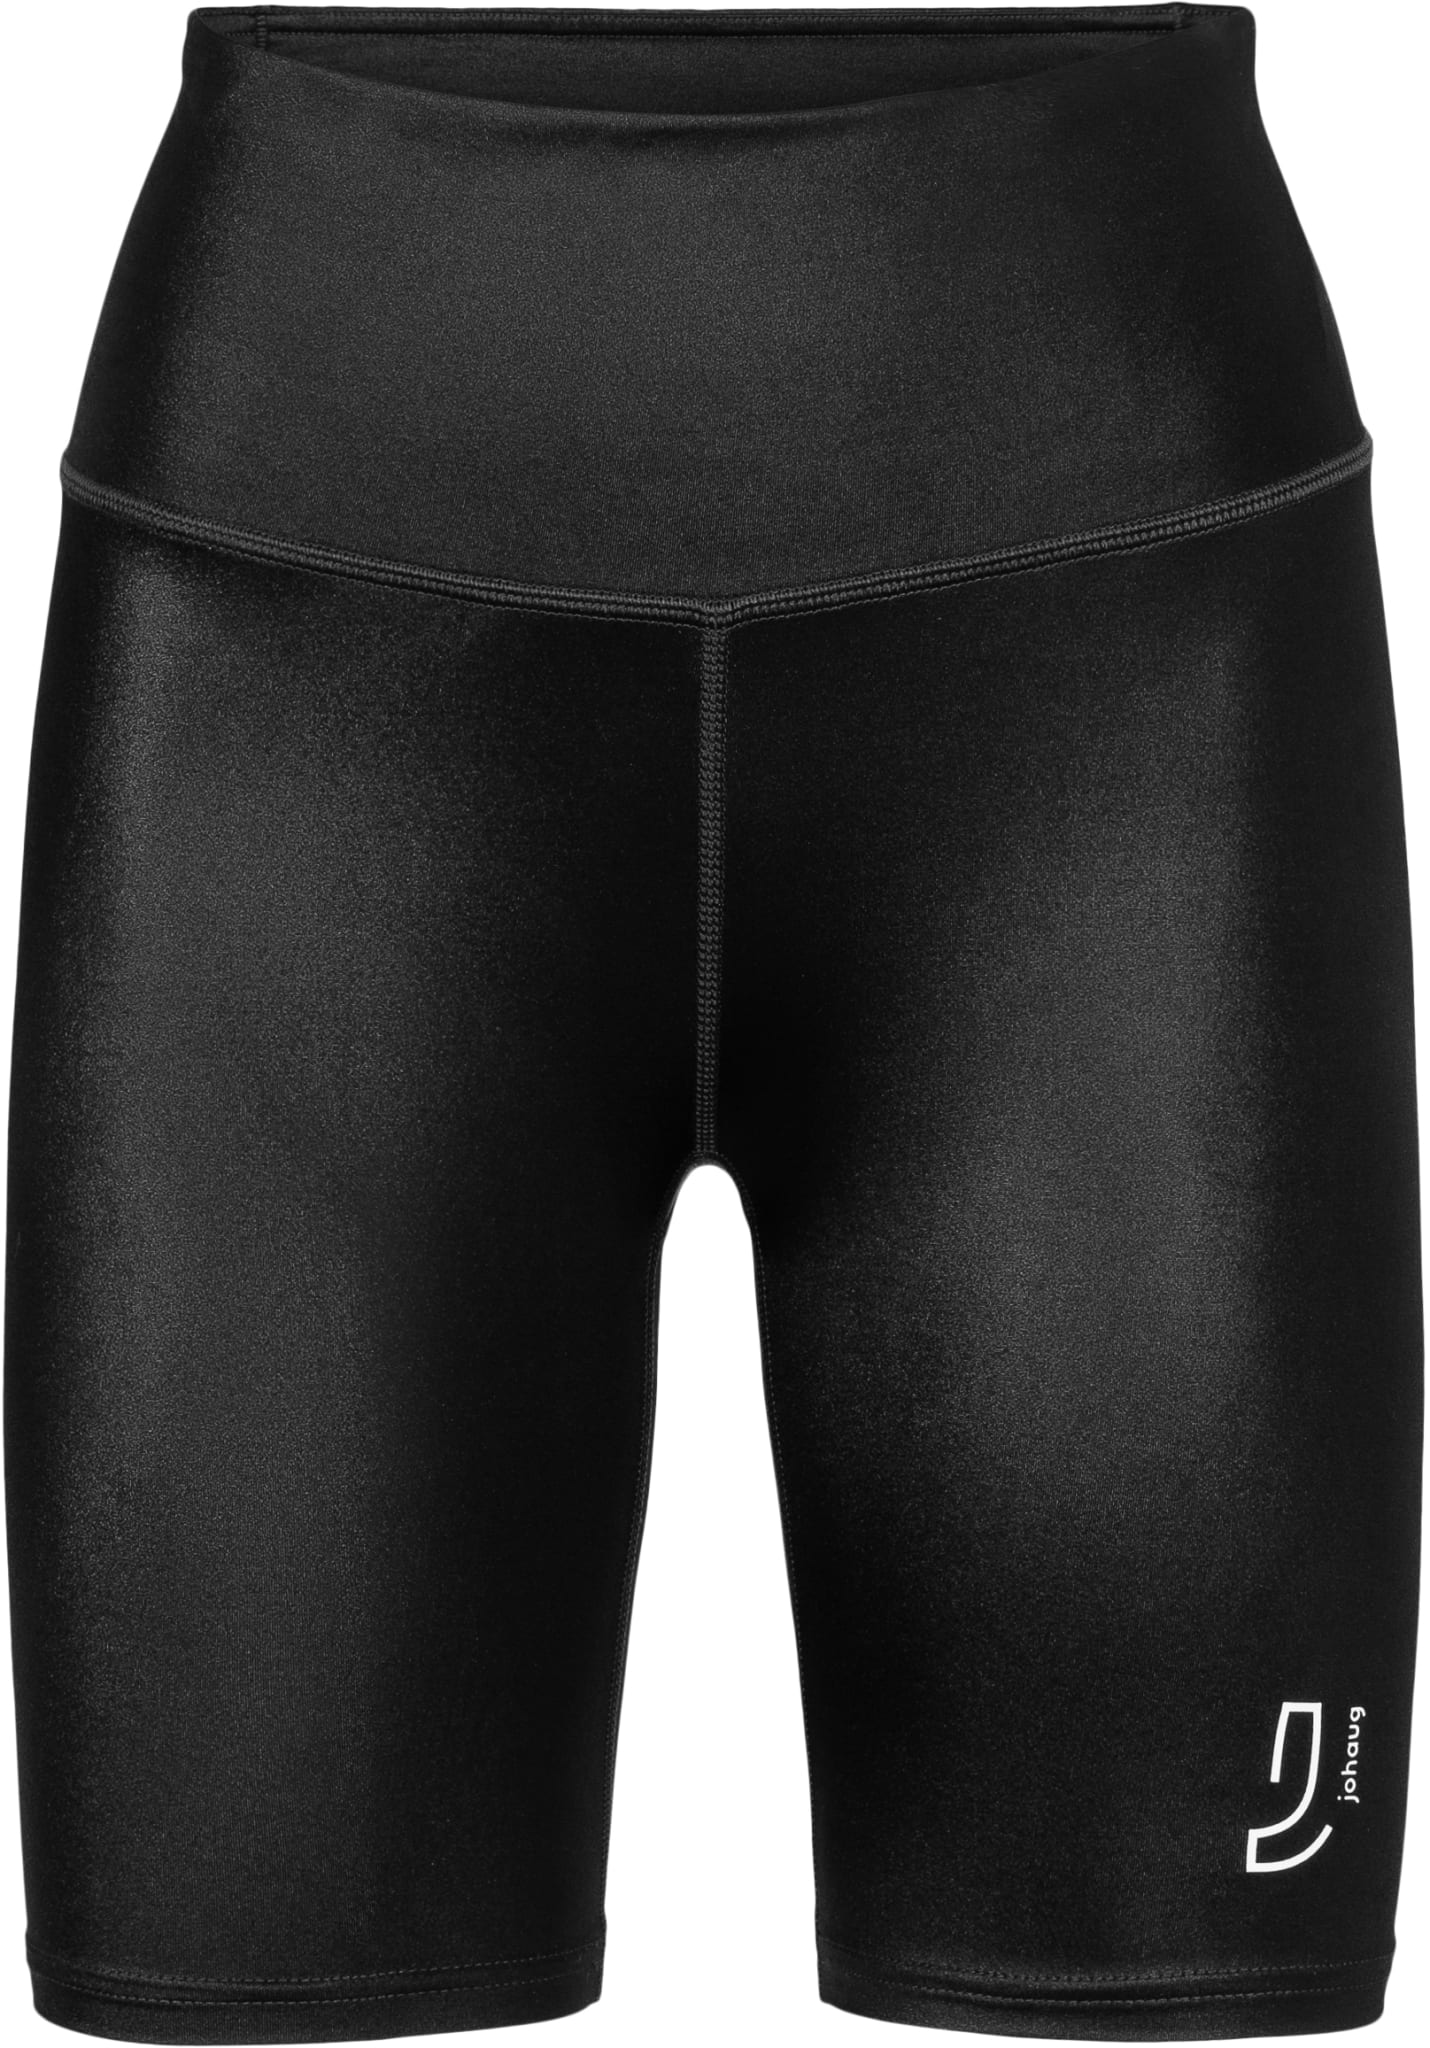 "Trendy ""biker shorts"" med høyt liv for all type trening"